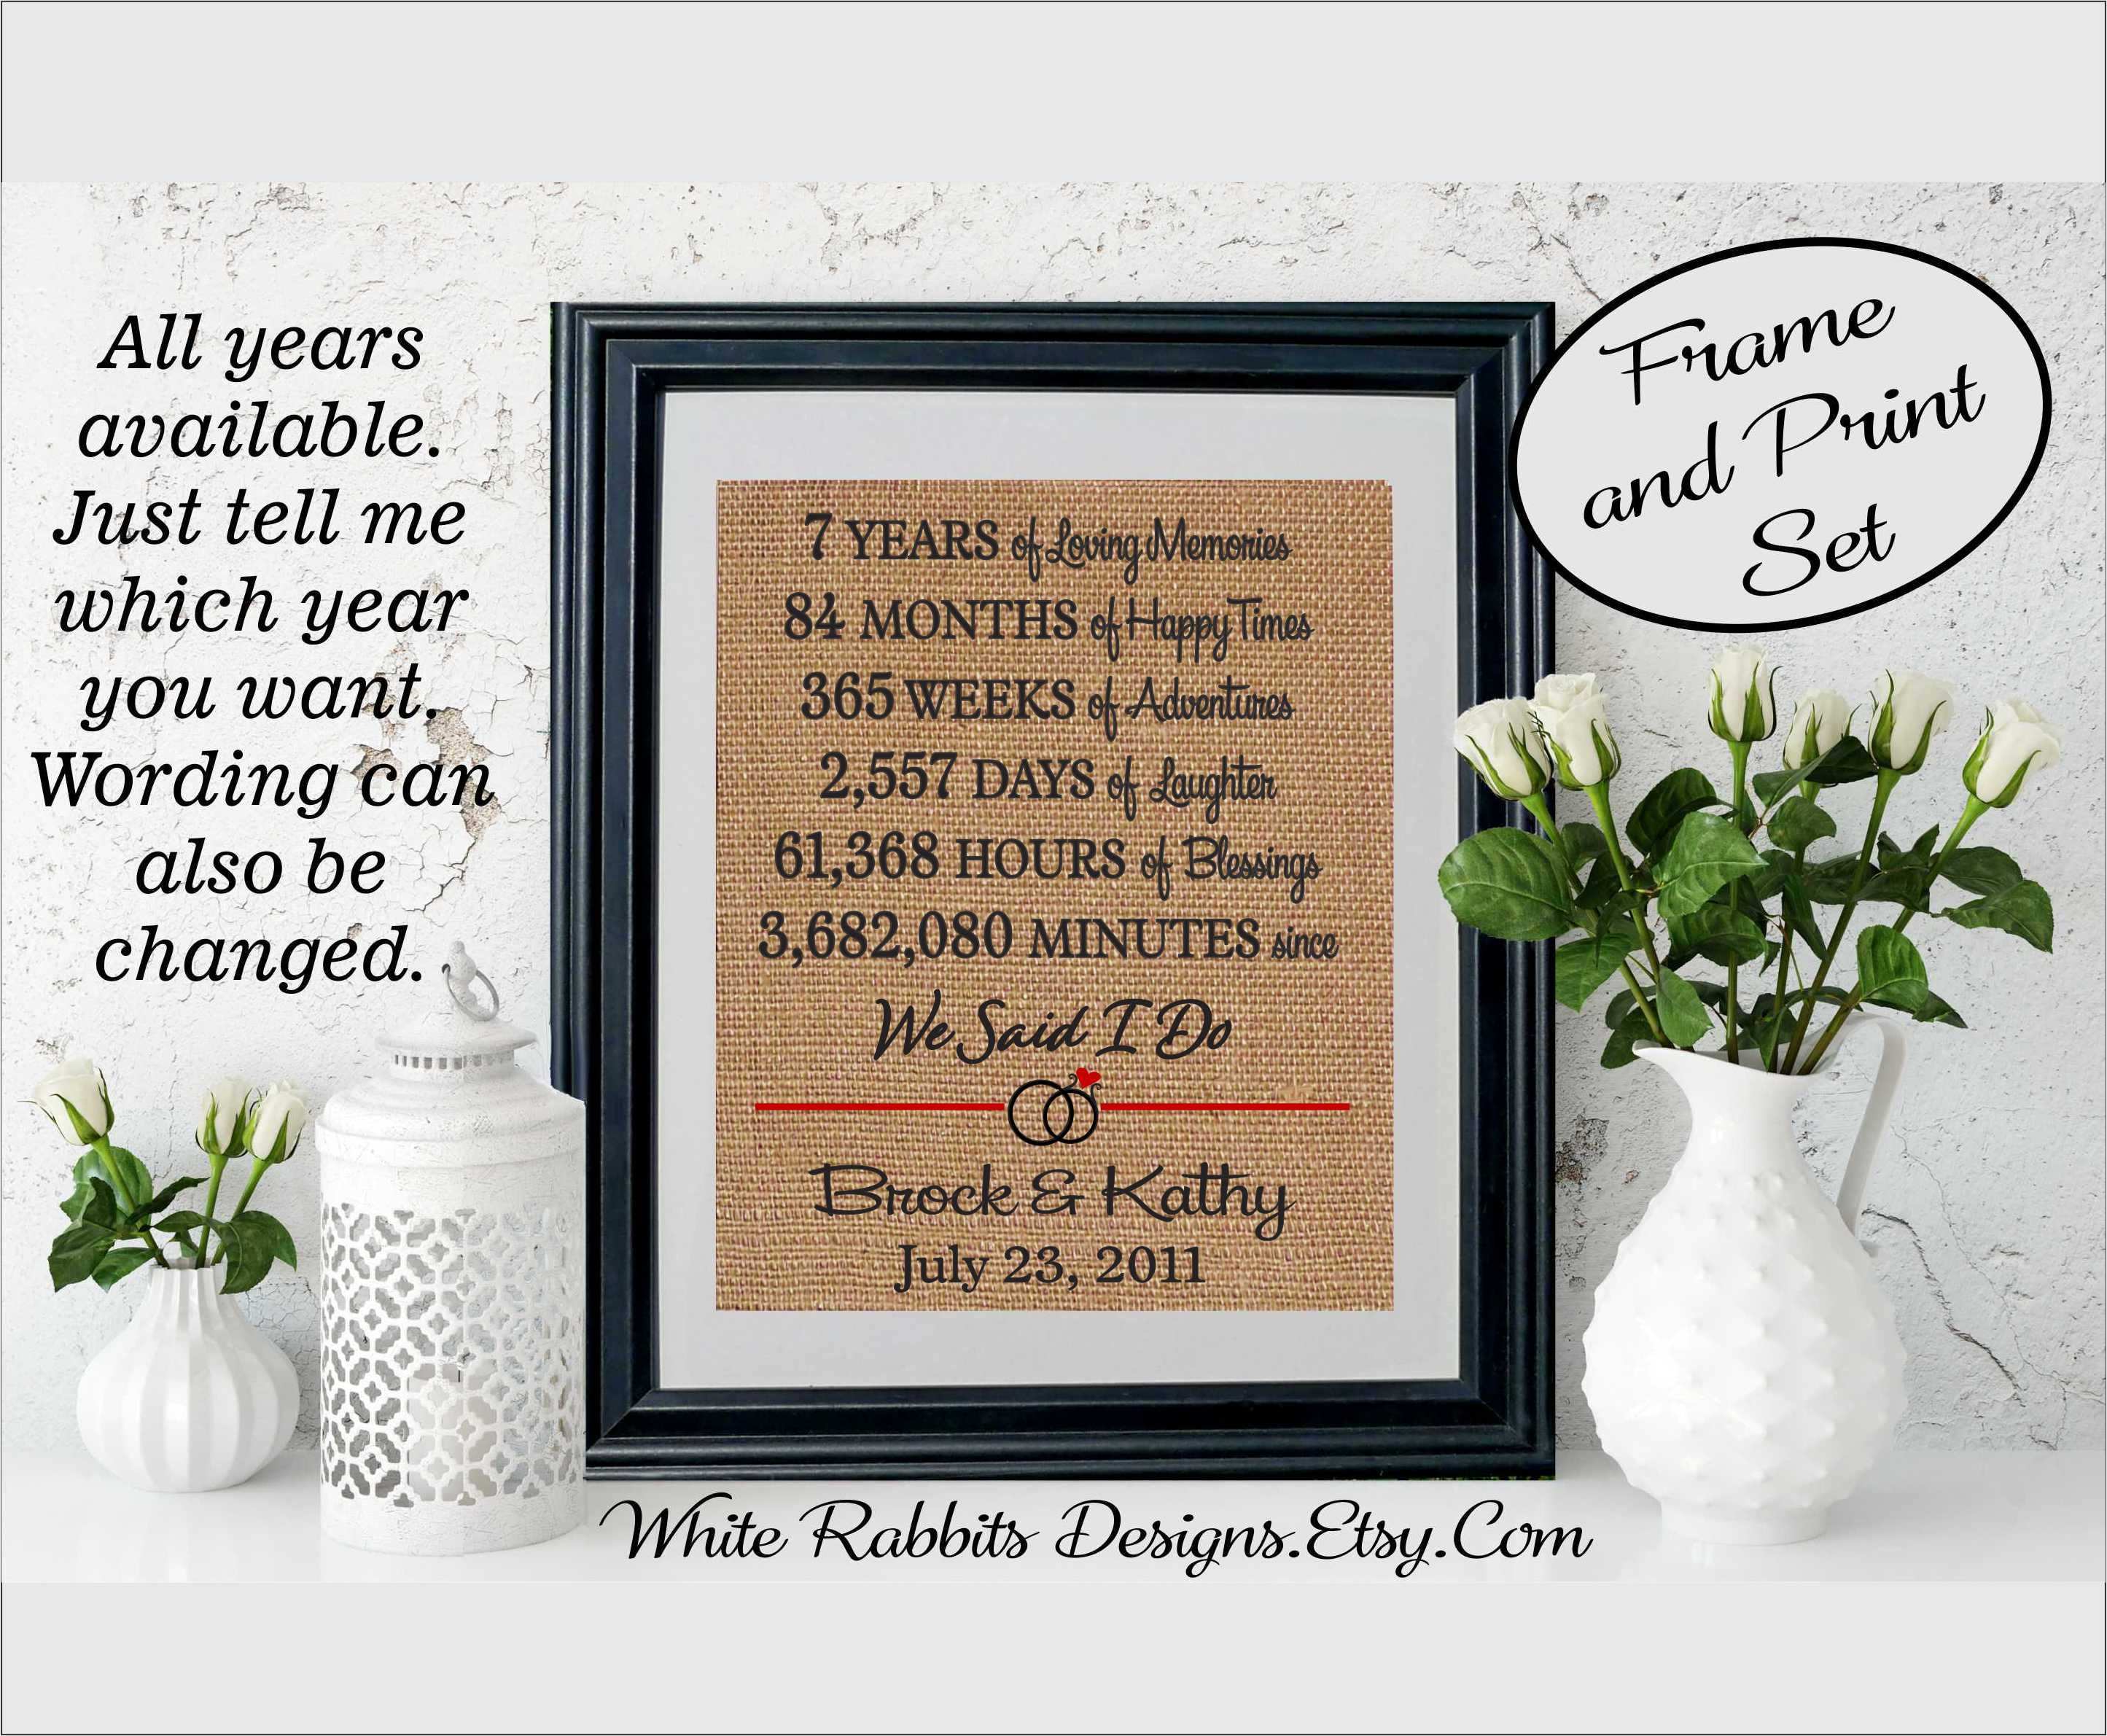 7th Wedding Anniversary.Framed 7th Wedding Anniversary 7th Anniversary Gift For Wife Gift For Husband Anniversary Gift To Wife Gift To Husband Gift Wife 5507